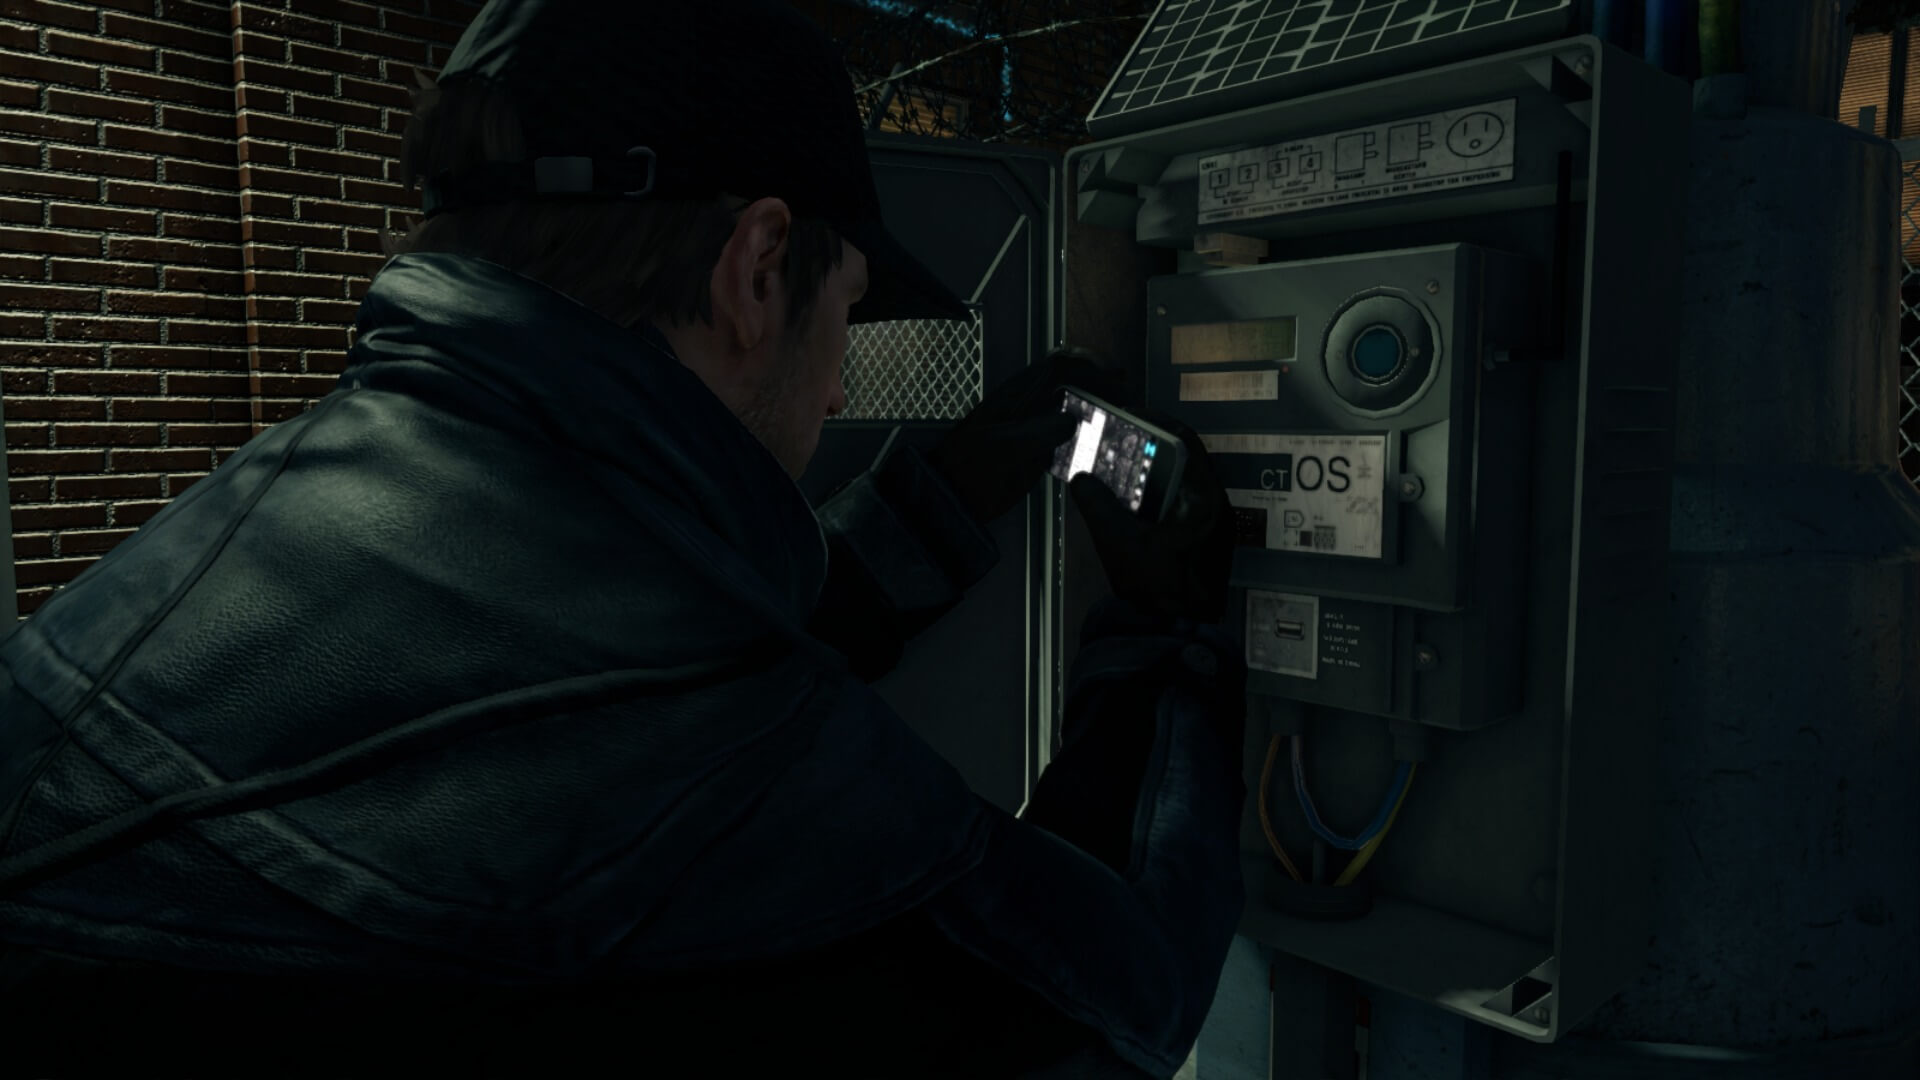 WATCH_DOGS™_20140604215856